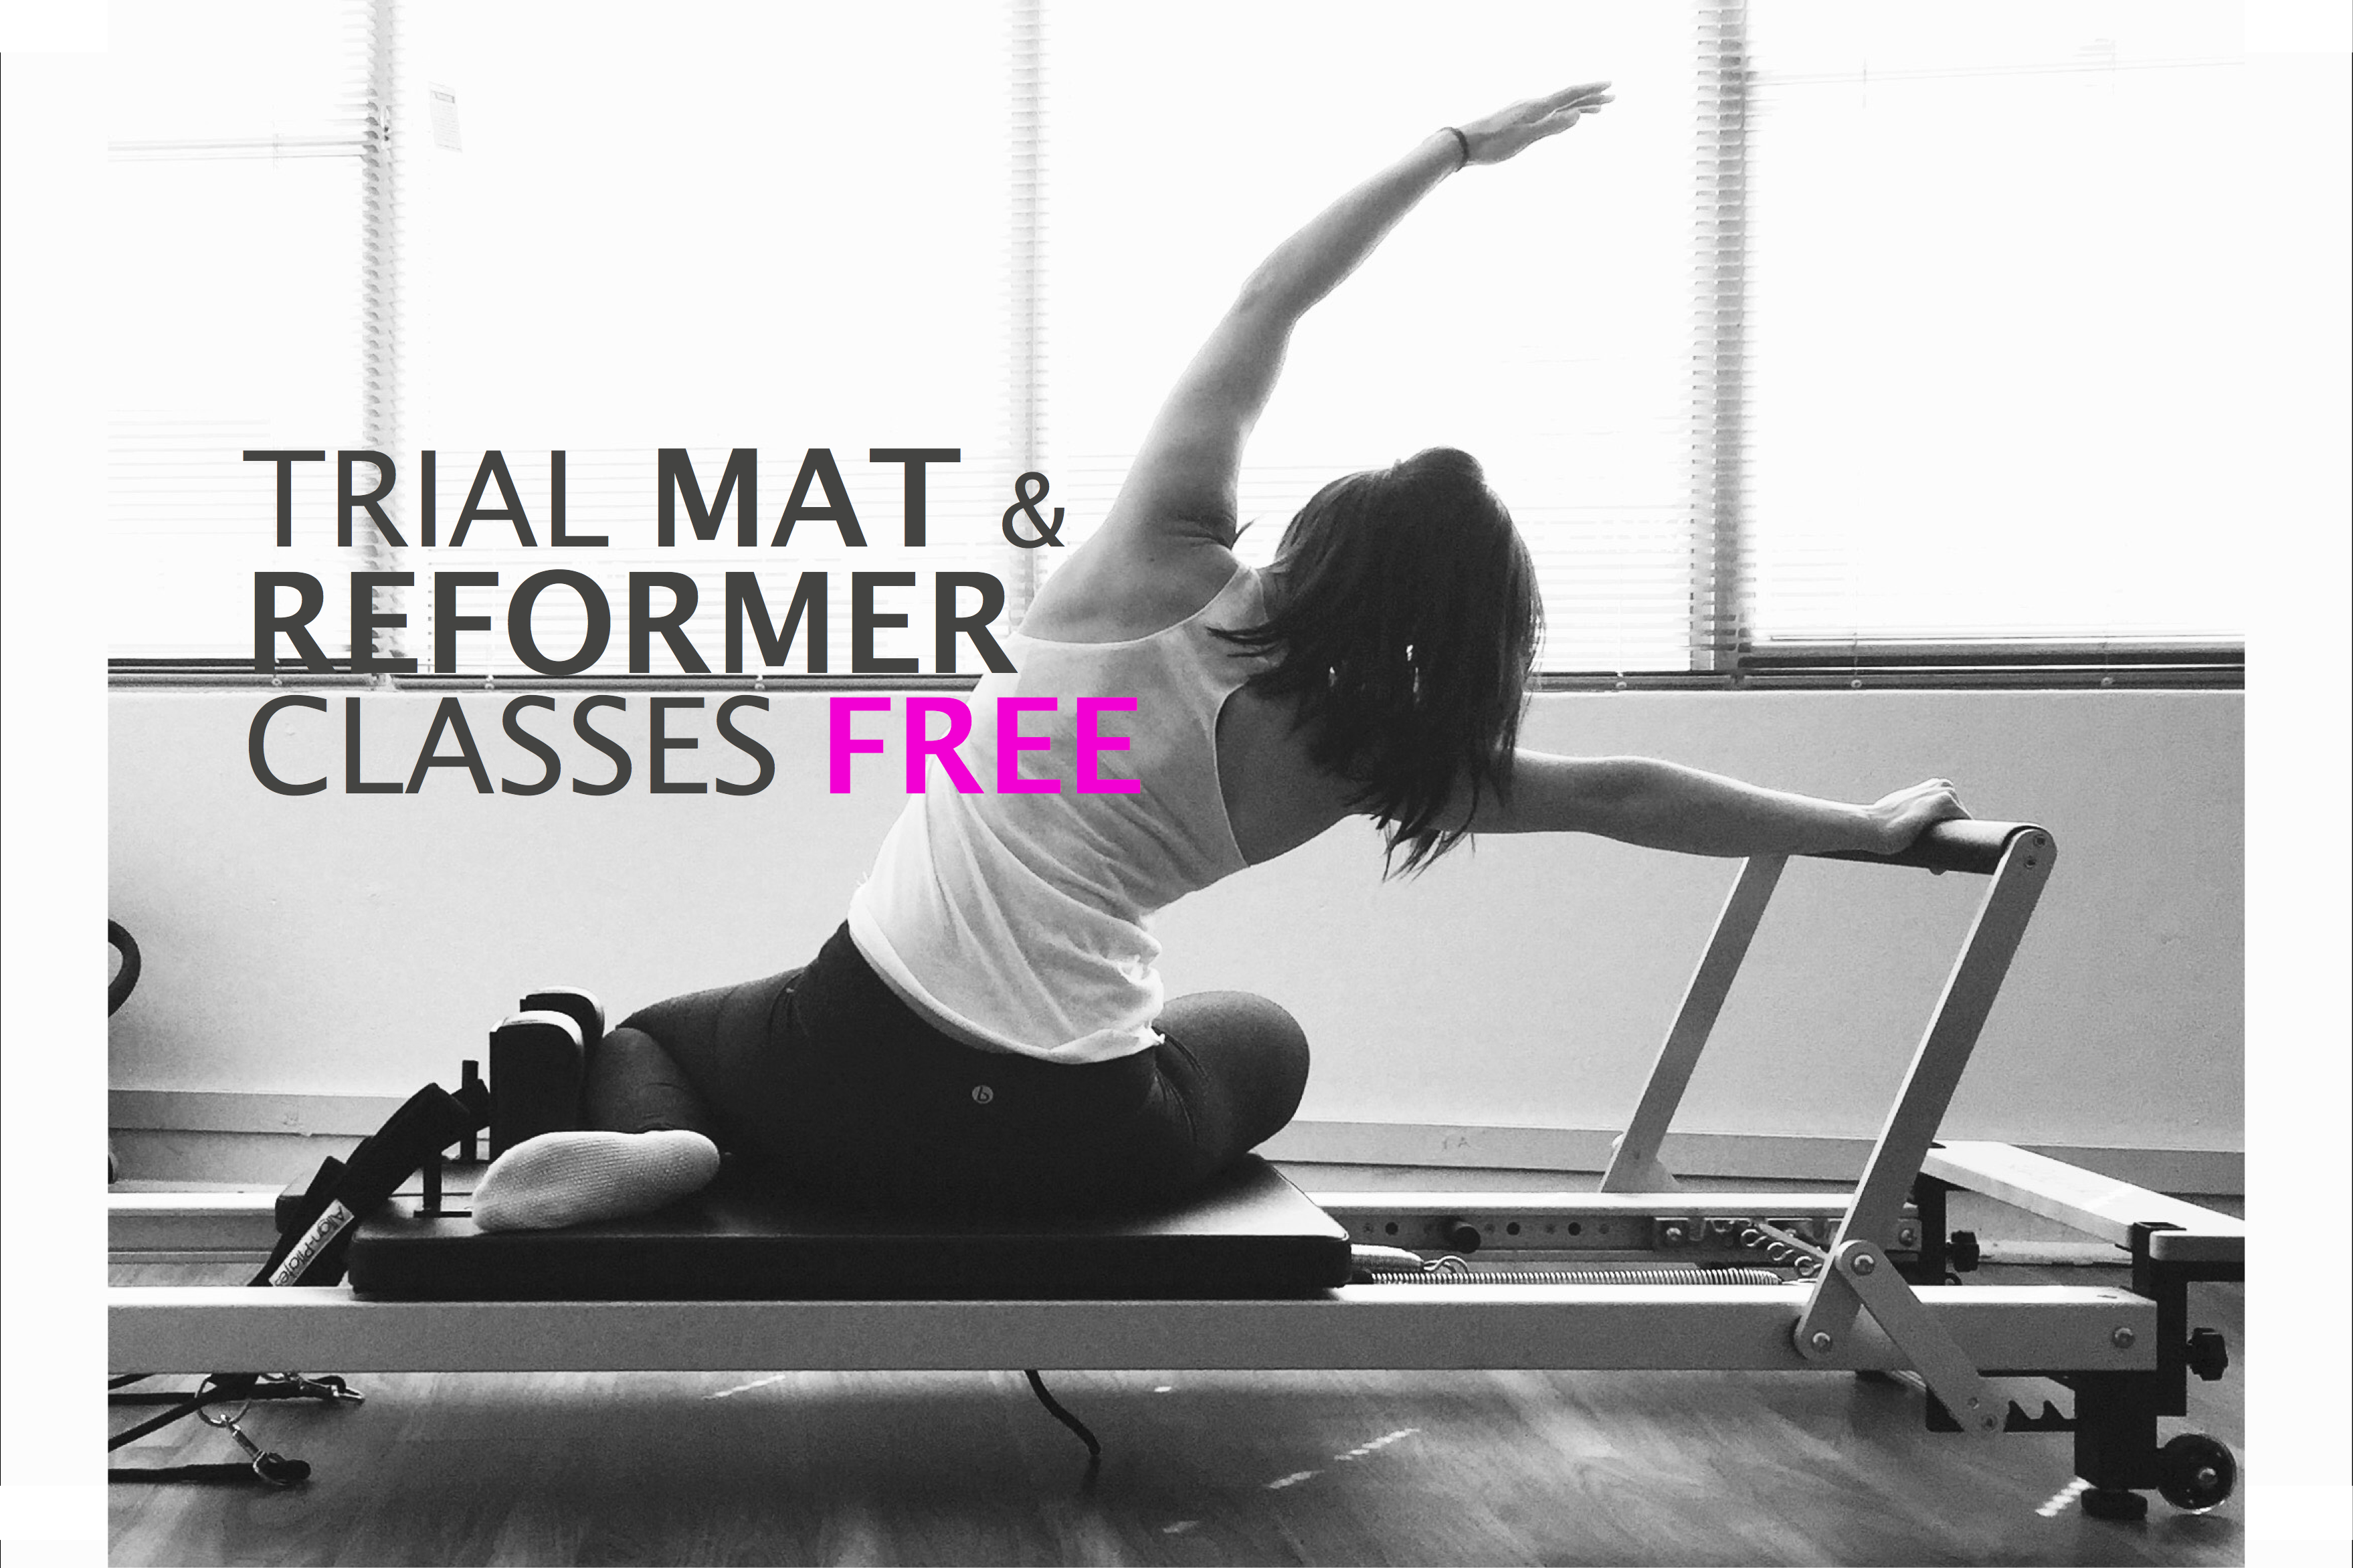 Our Group Reformer Pilates Classes up to 7